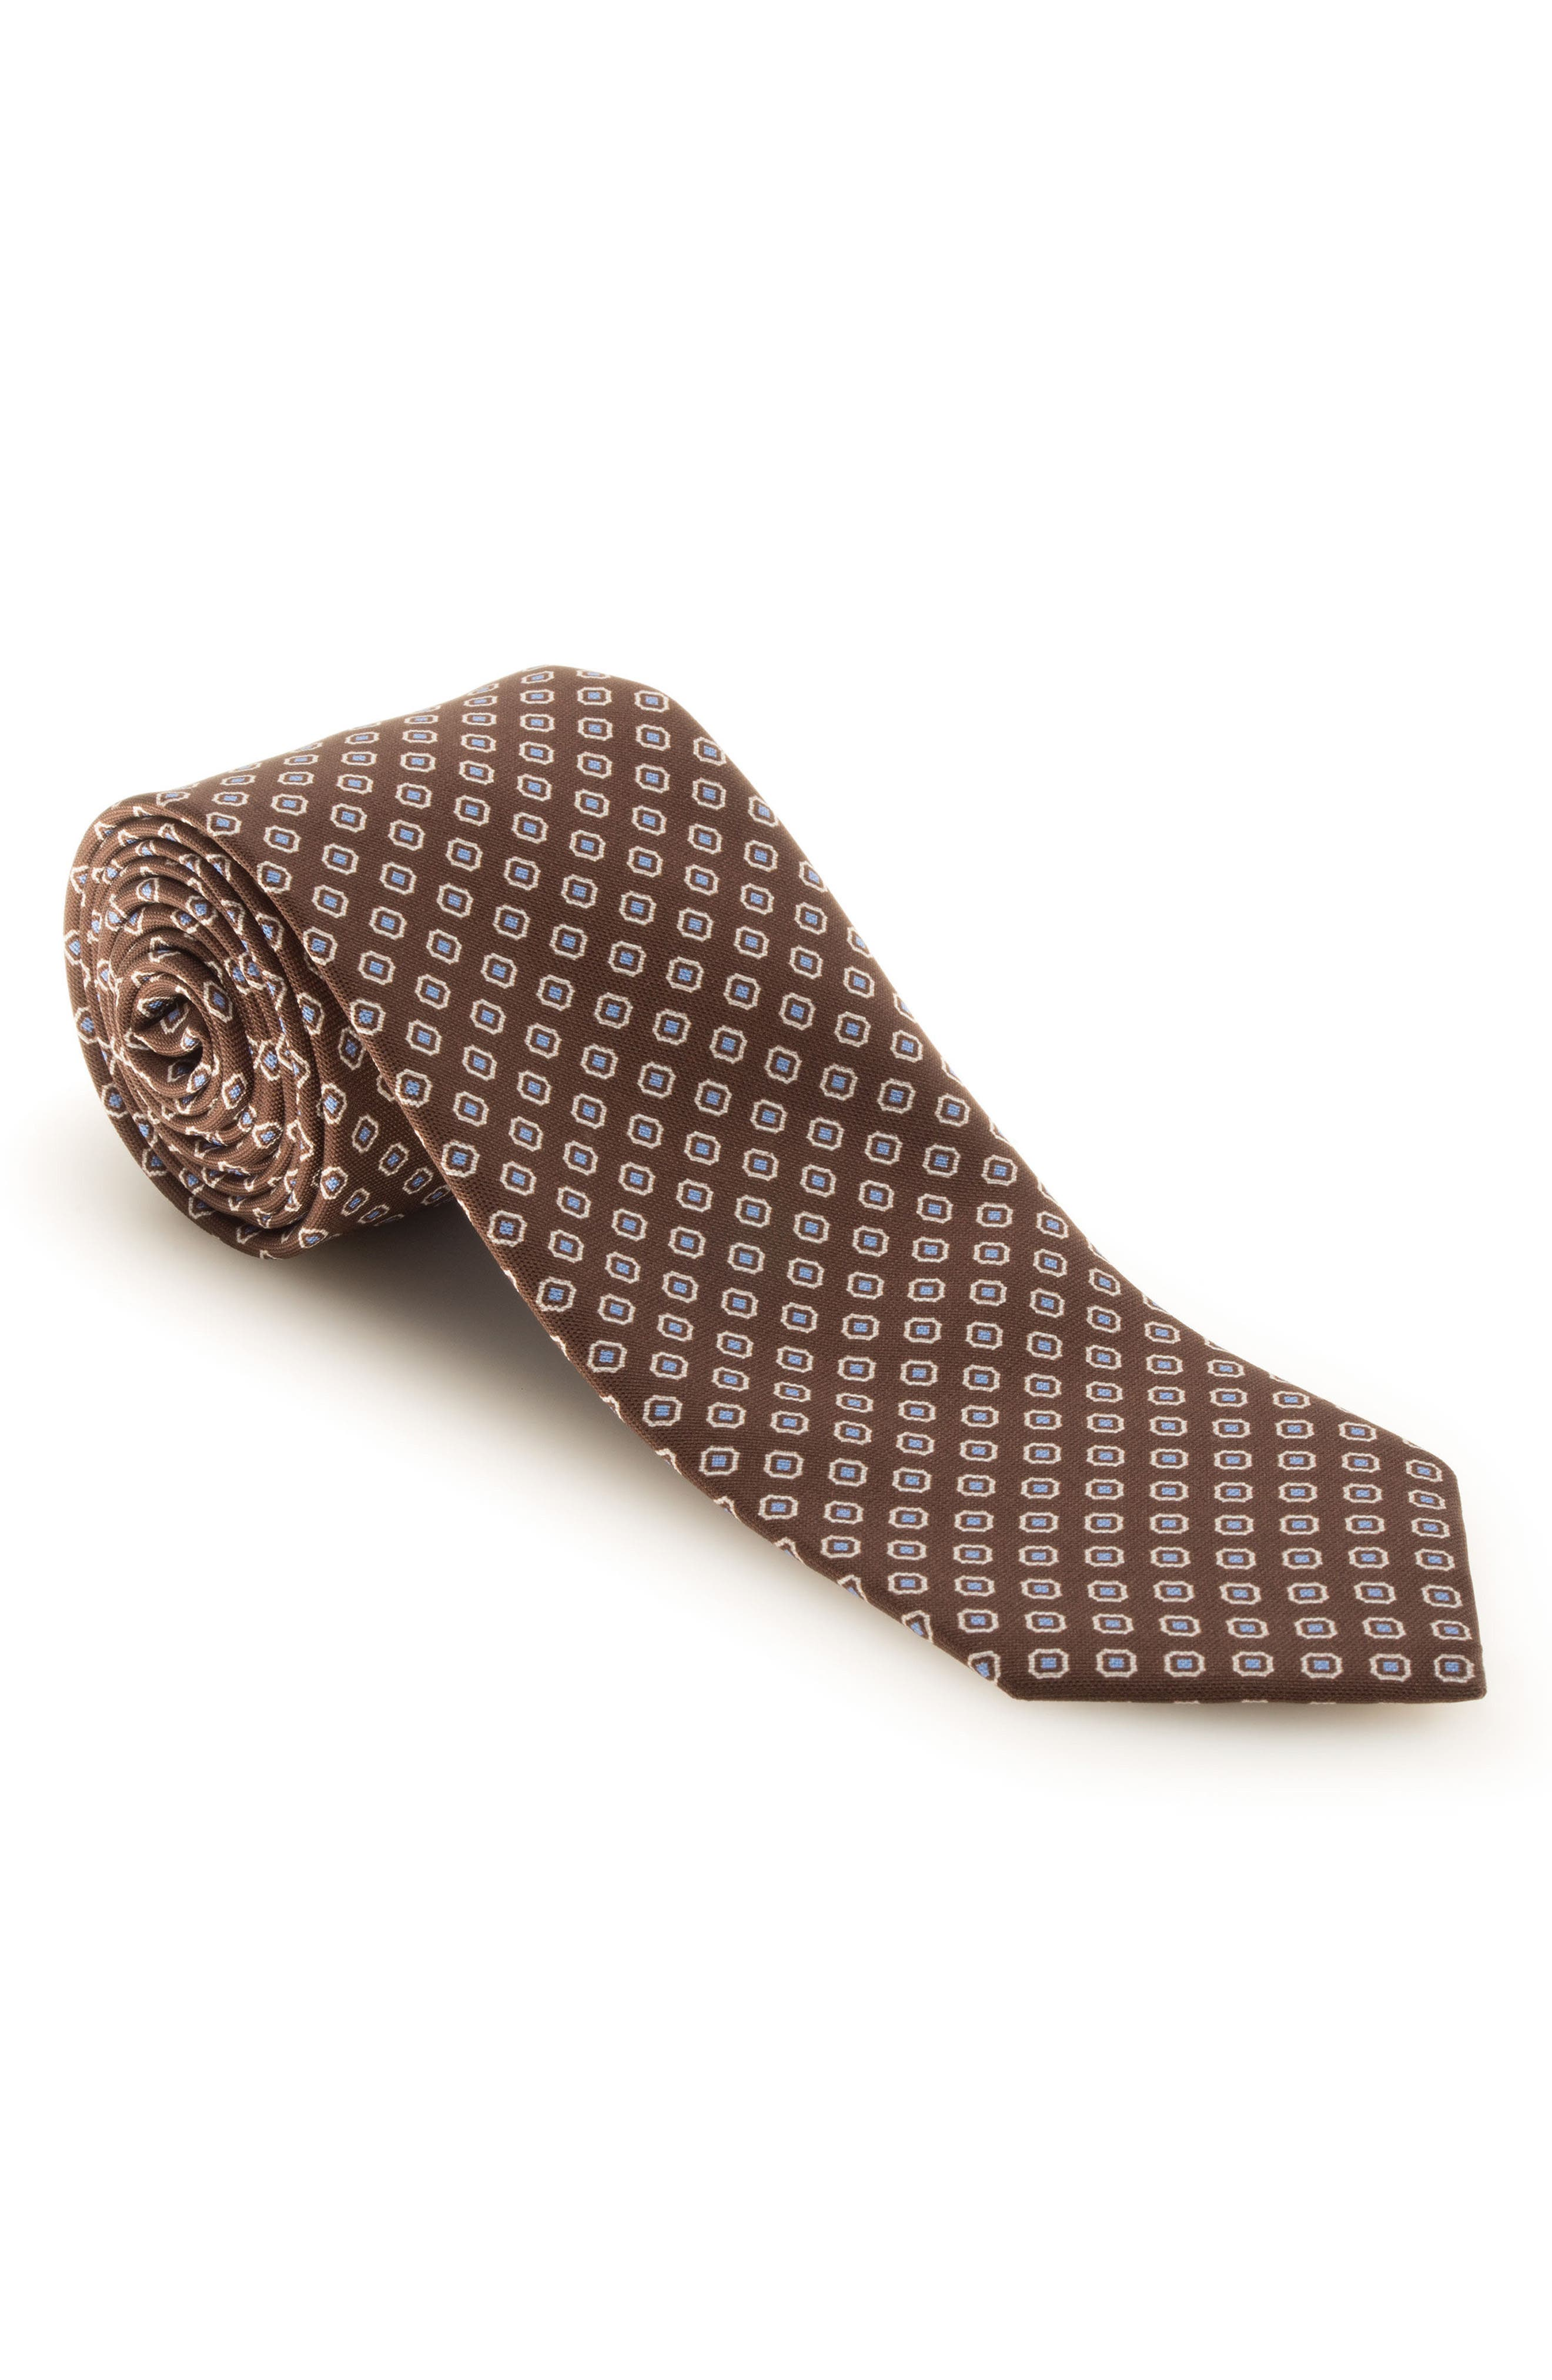 Medallion Silk Tie,                             Main thumbnail 1, color,                             200